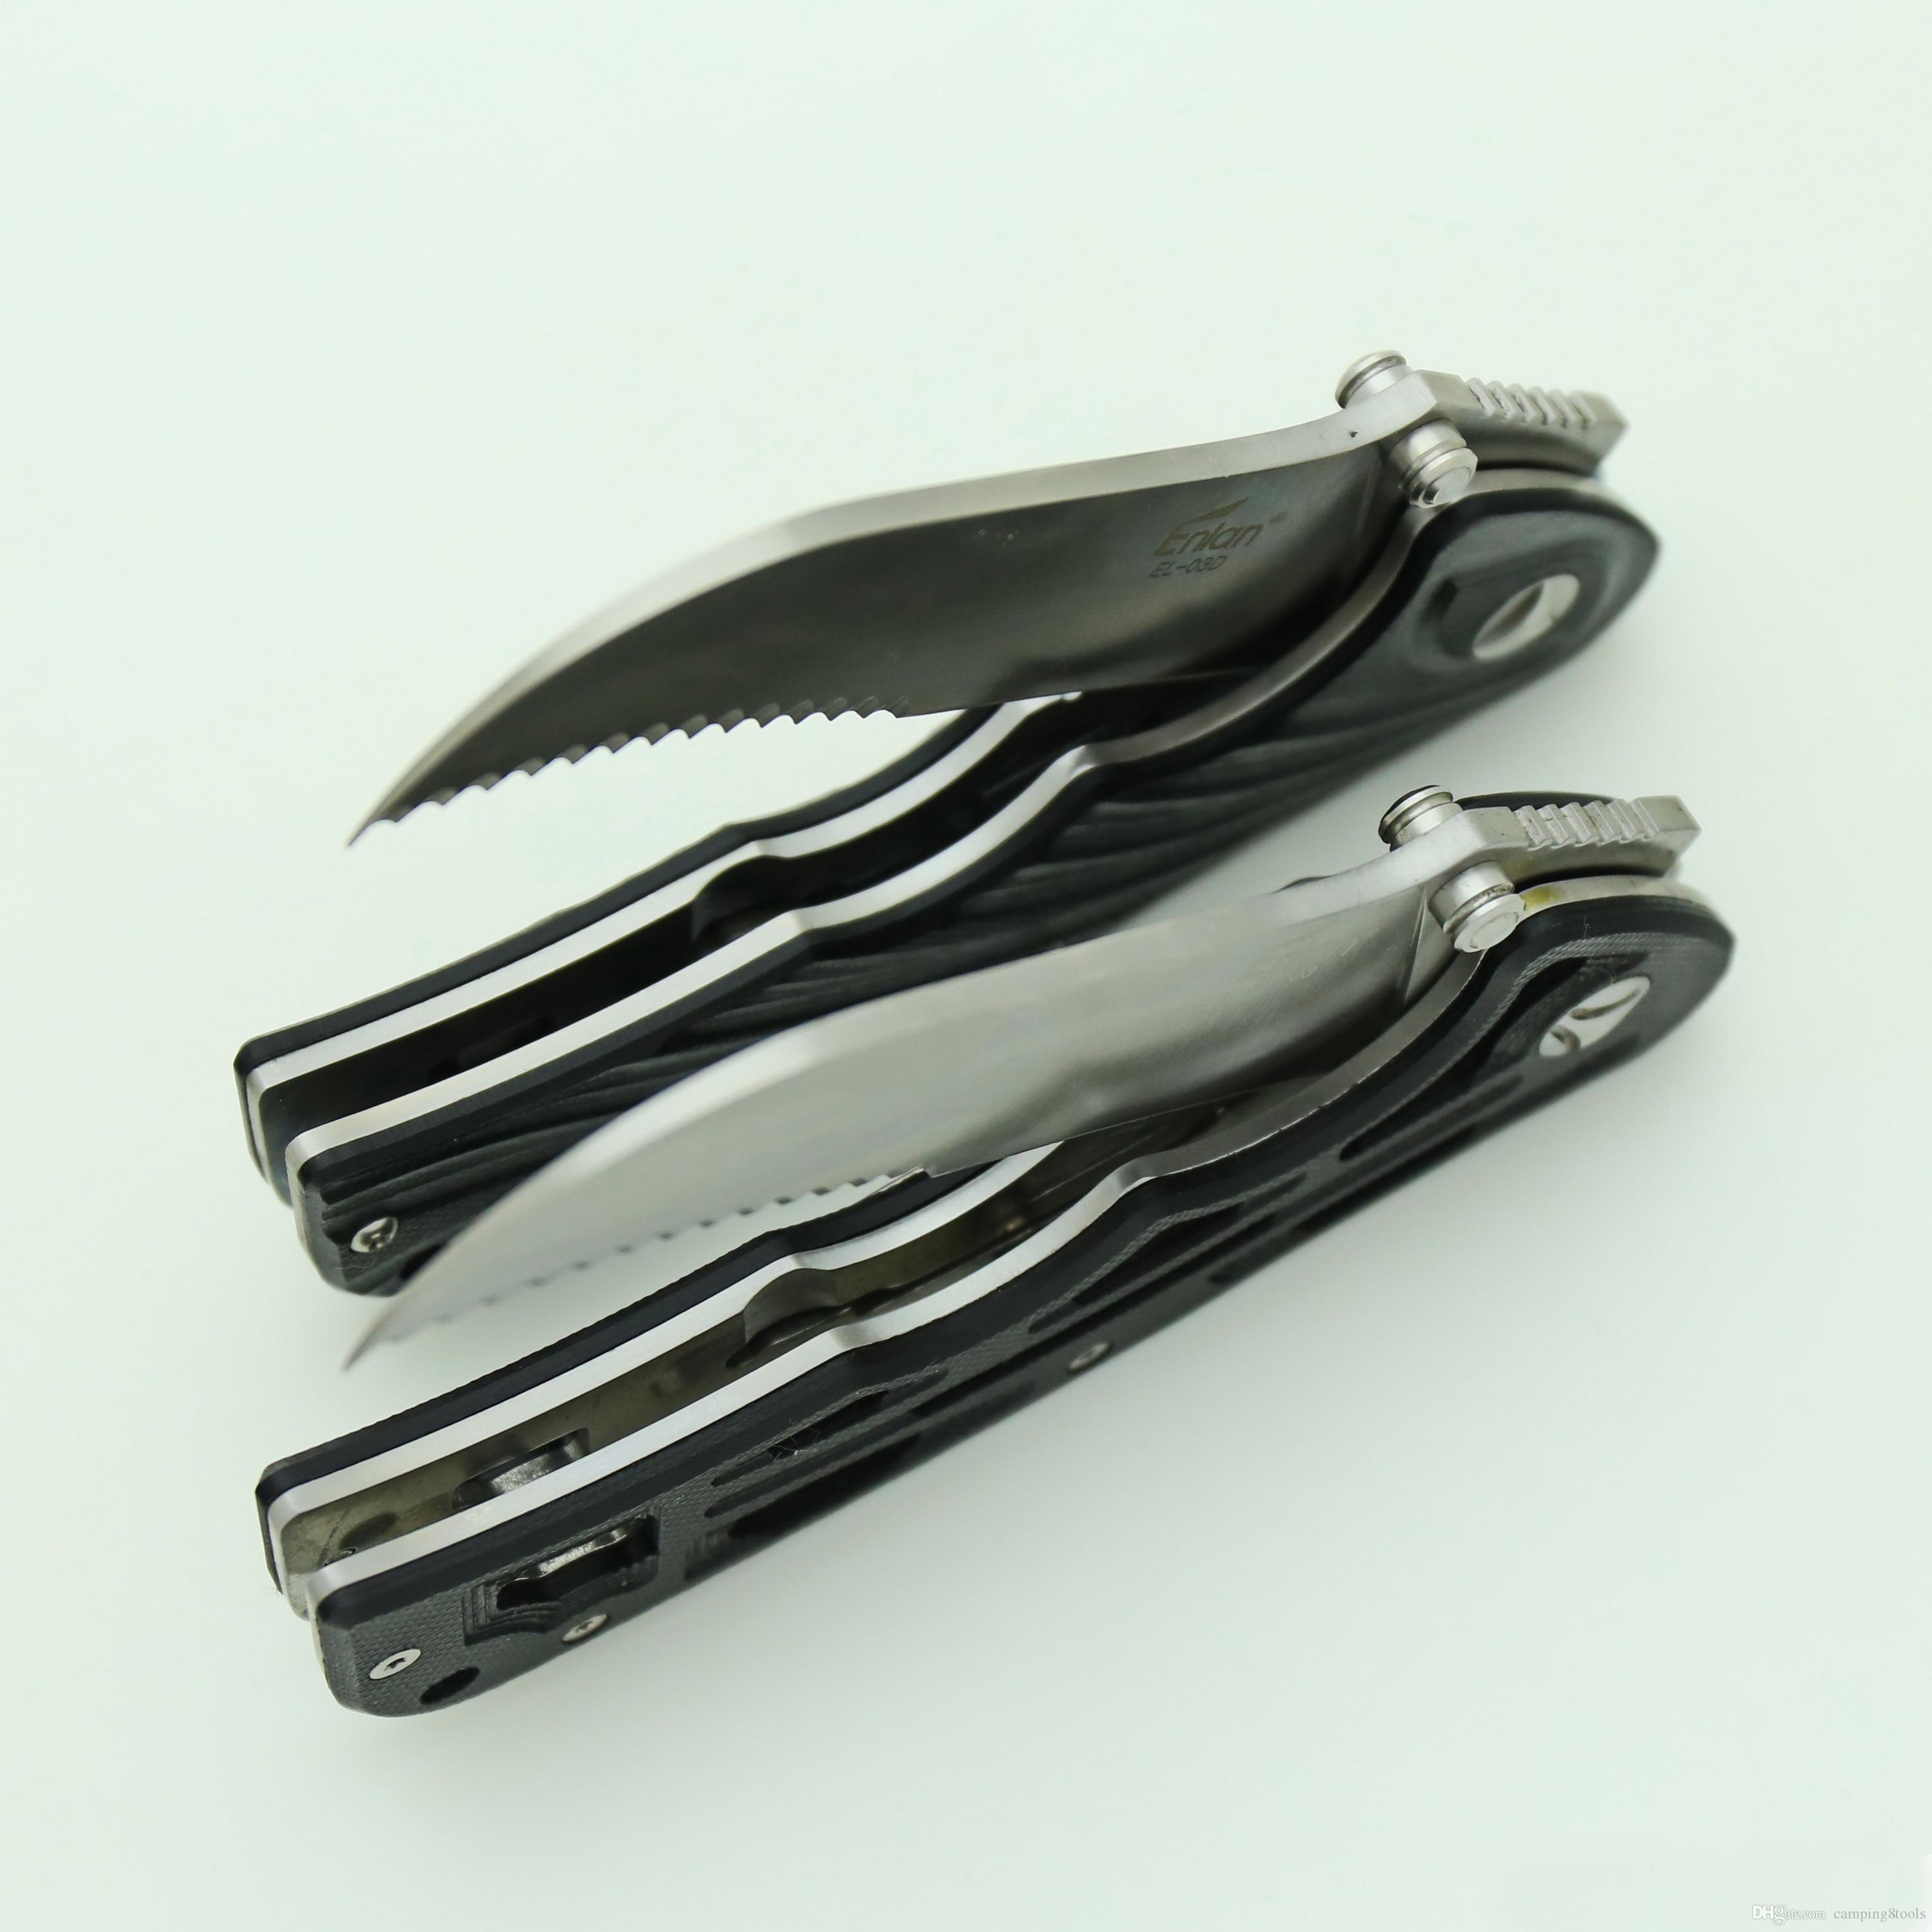 EL03 Sawtooth Folding Knife 8Cr13Mov Blade G10 Handle Outdoor Sports camping Hiking hunting Tactical Combat gift knives pocket EDC Tools